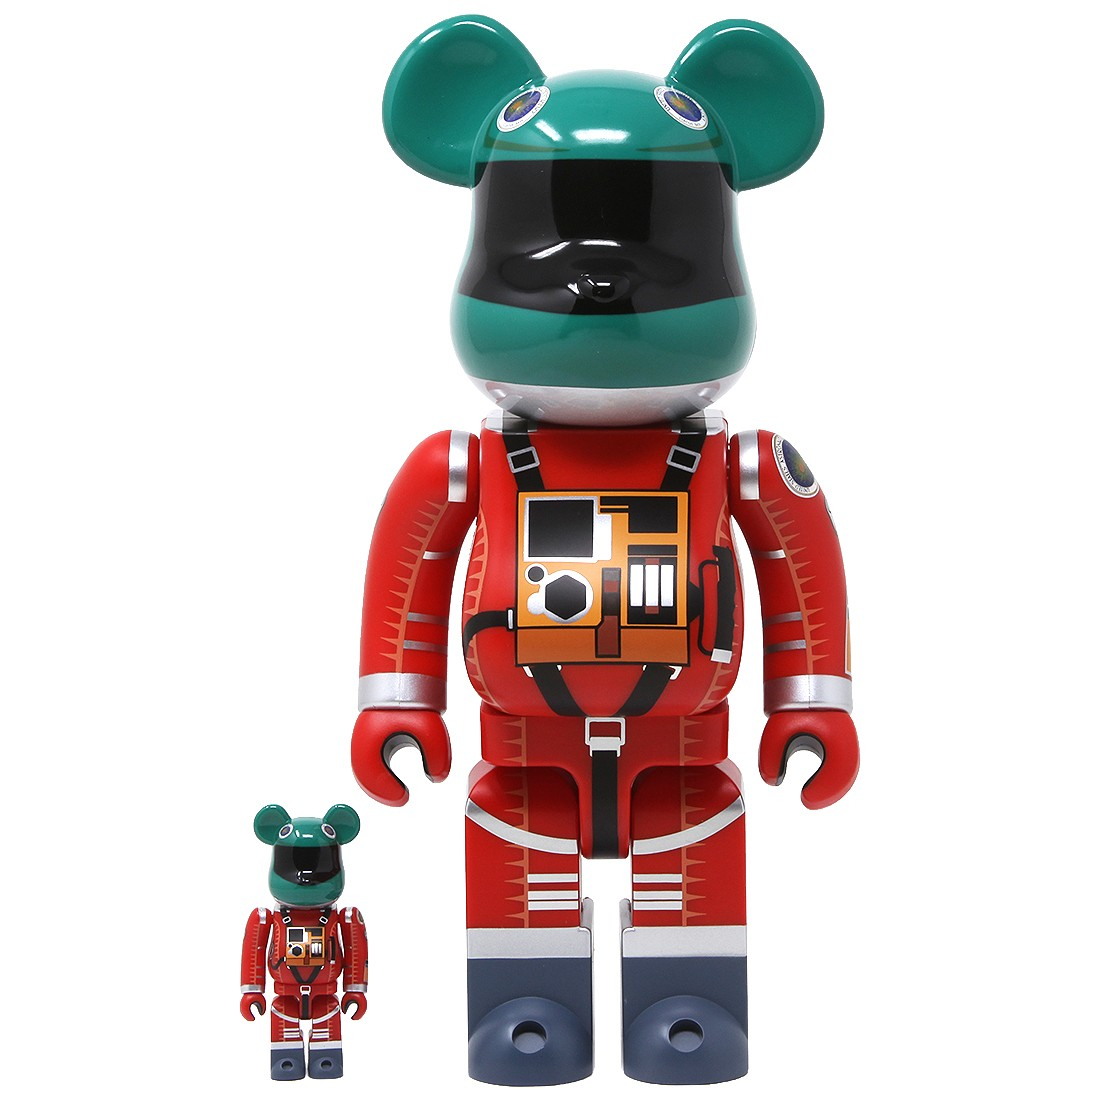 Medicom 2001 A Space Odyssey Space Suit Green Helmet Orange Suit Ver. 100% 400% Bearbrick Figure Set (green / orange)